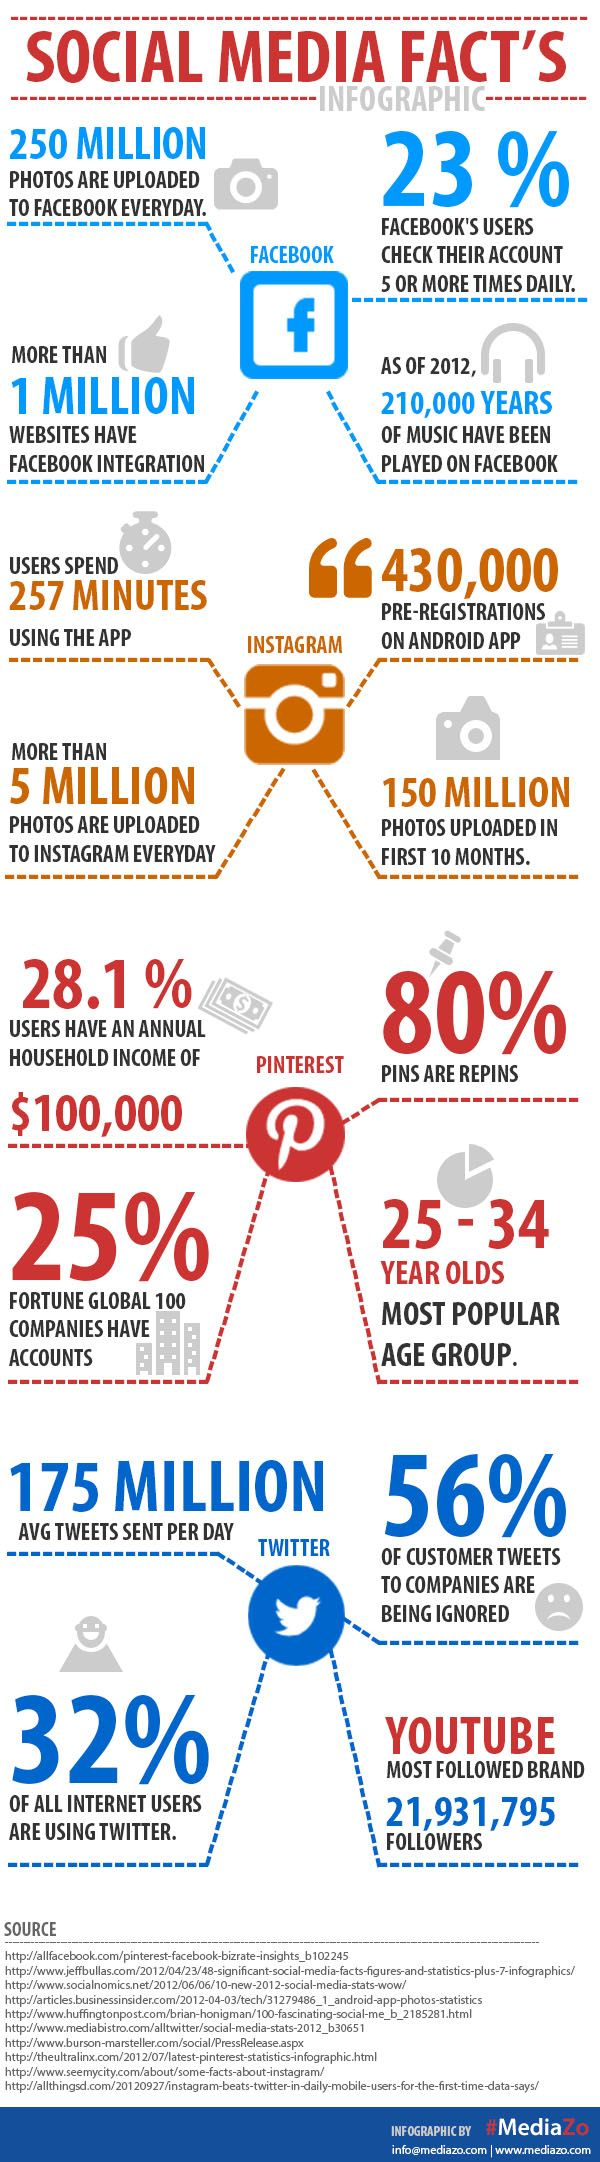 What Are Some Noteworthy Social Media Facts?